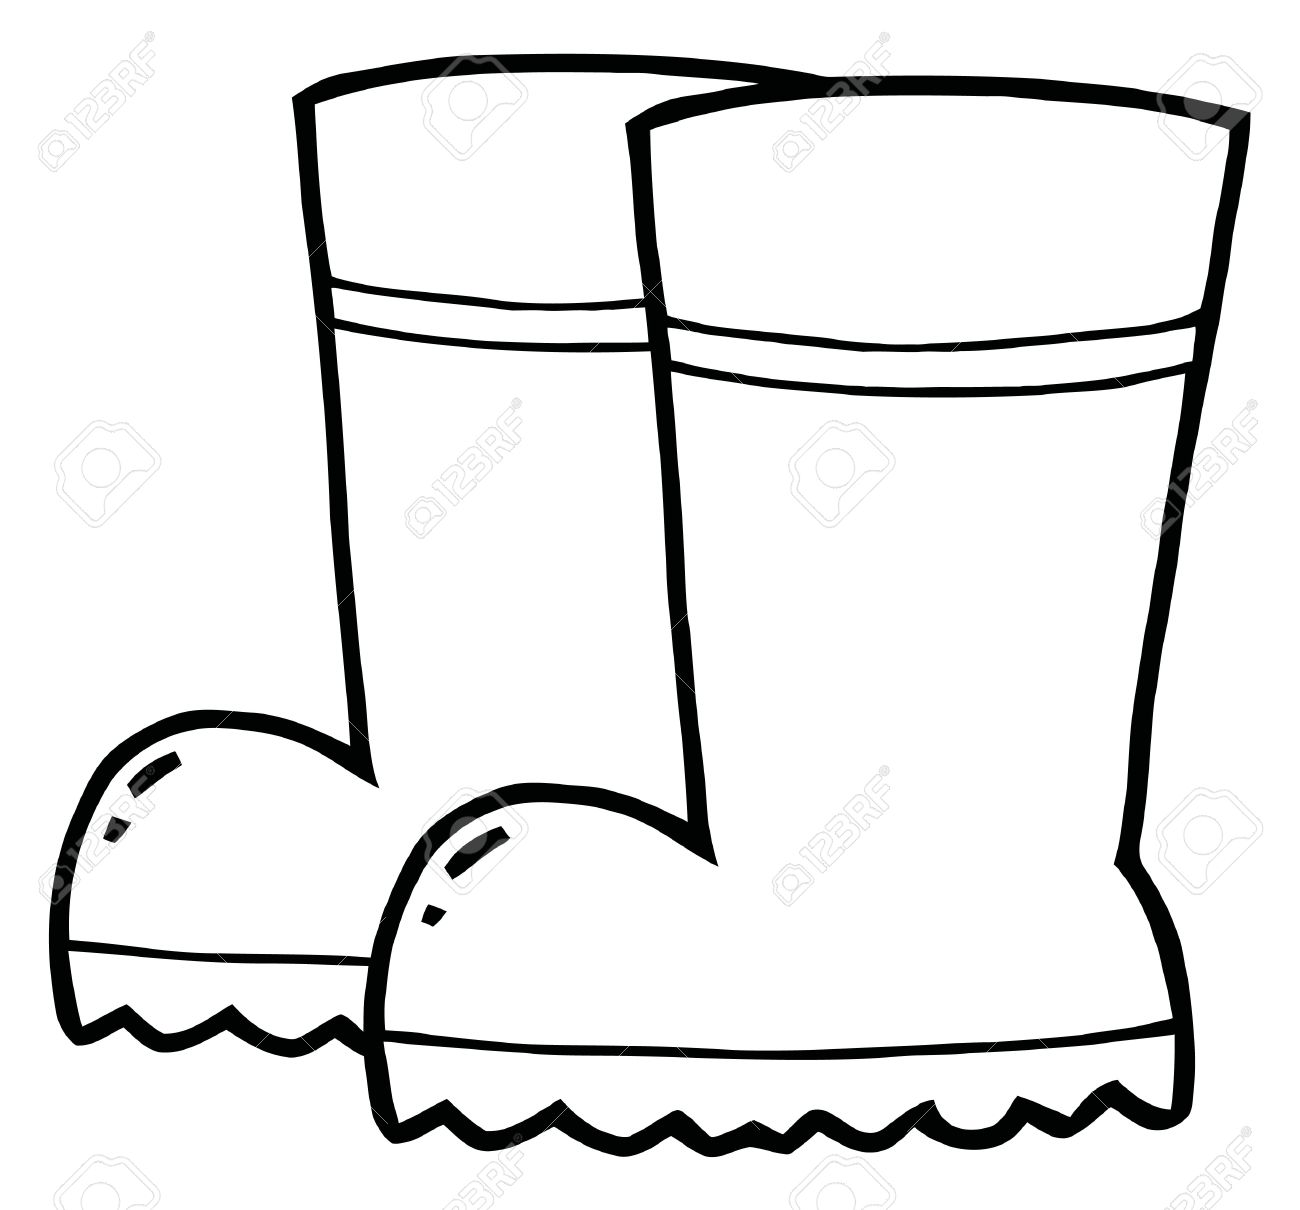 6 422 rubber boots cliparts stock vector and royalty free rubber